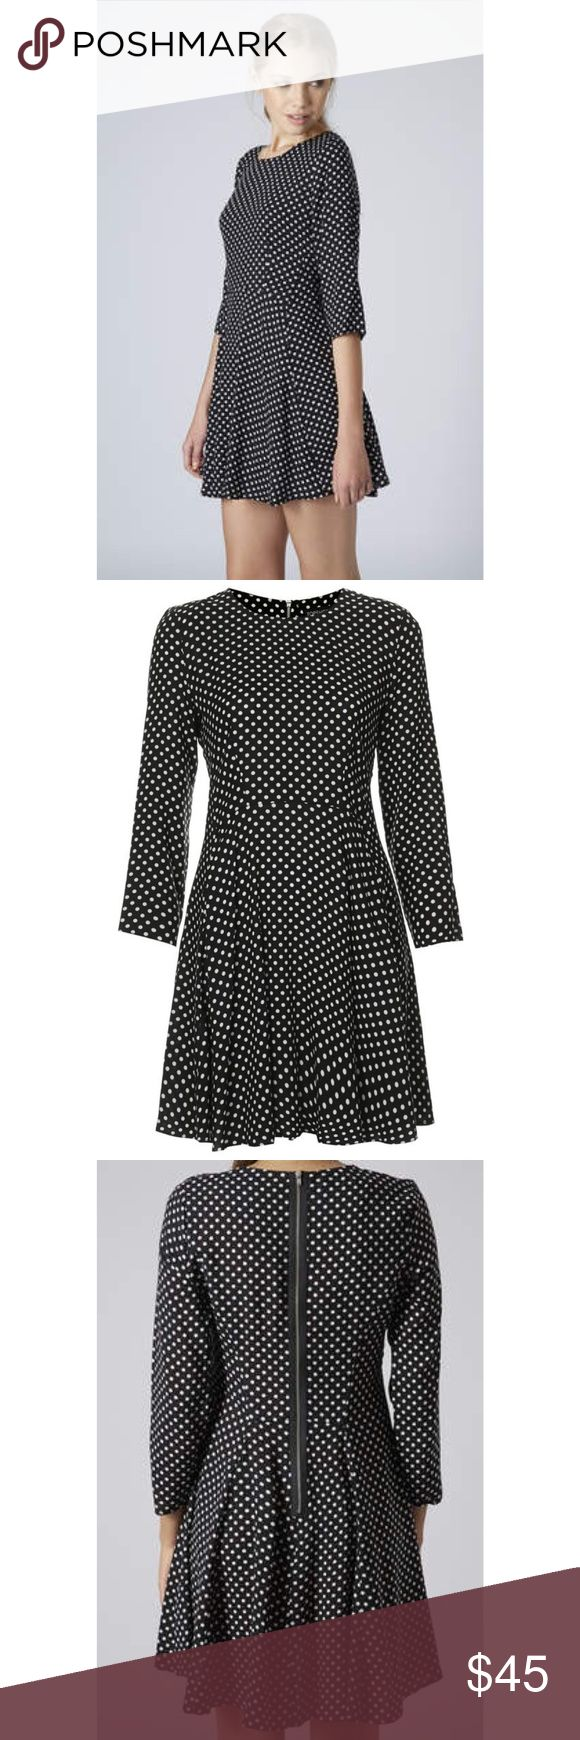 TOPSHOP Petite Spotty Print Black Swing Dress Petite polka dot print swing skater dress cut with a high waist and softly pleated skirt. 3/4 sleeve with zip fastening back. 100% Viscose. Machine washable. Topshop PETITE Dresses Mini